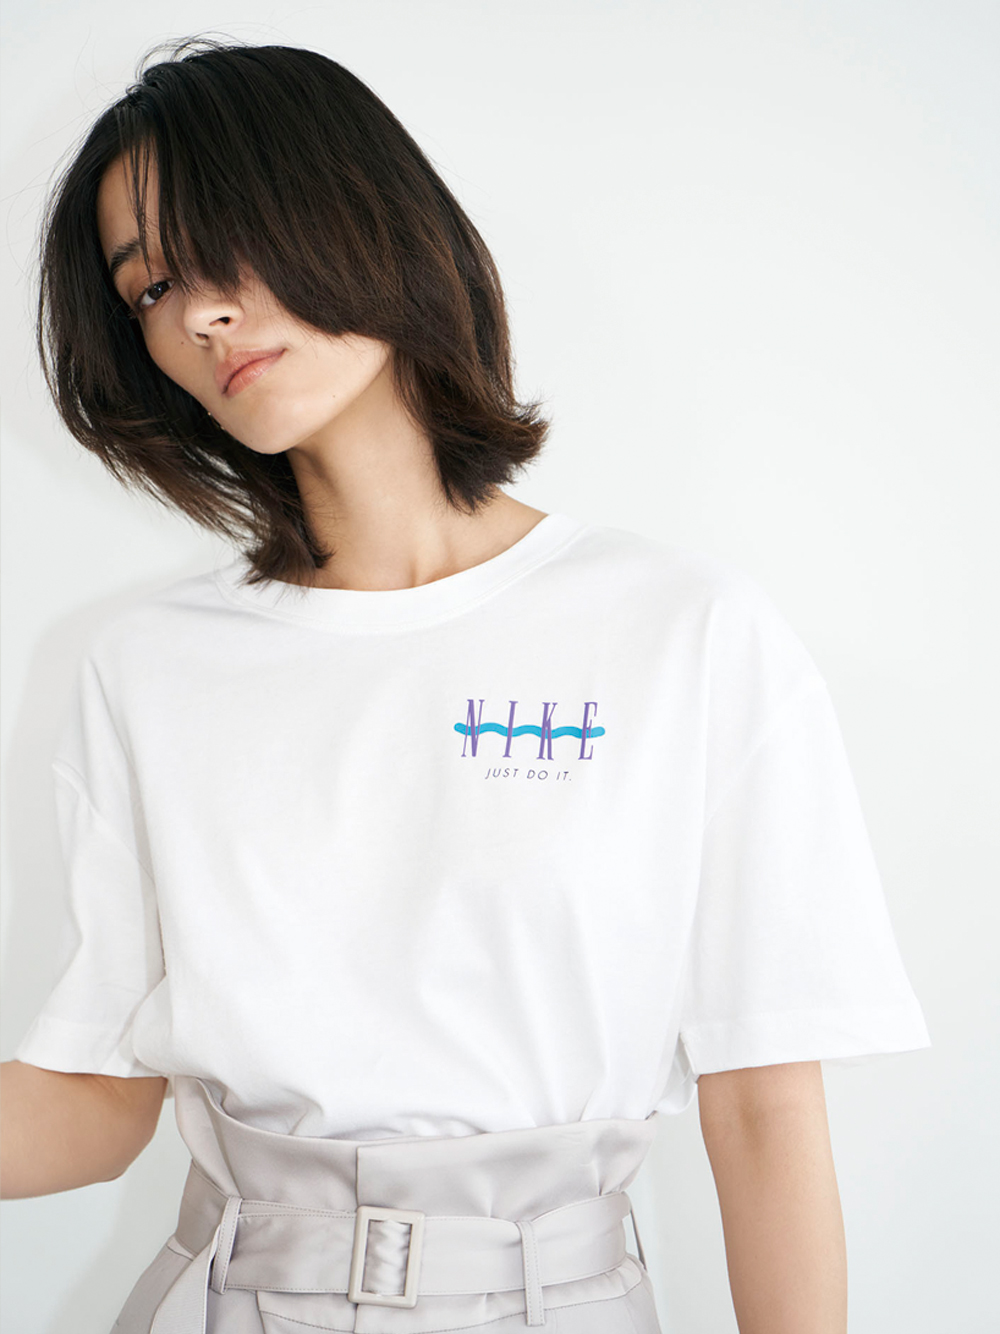 【NIKE】NSW ボーイ ヴィンテージ S/S Tシャツ